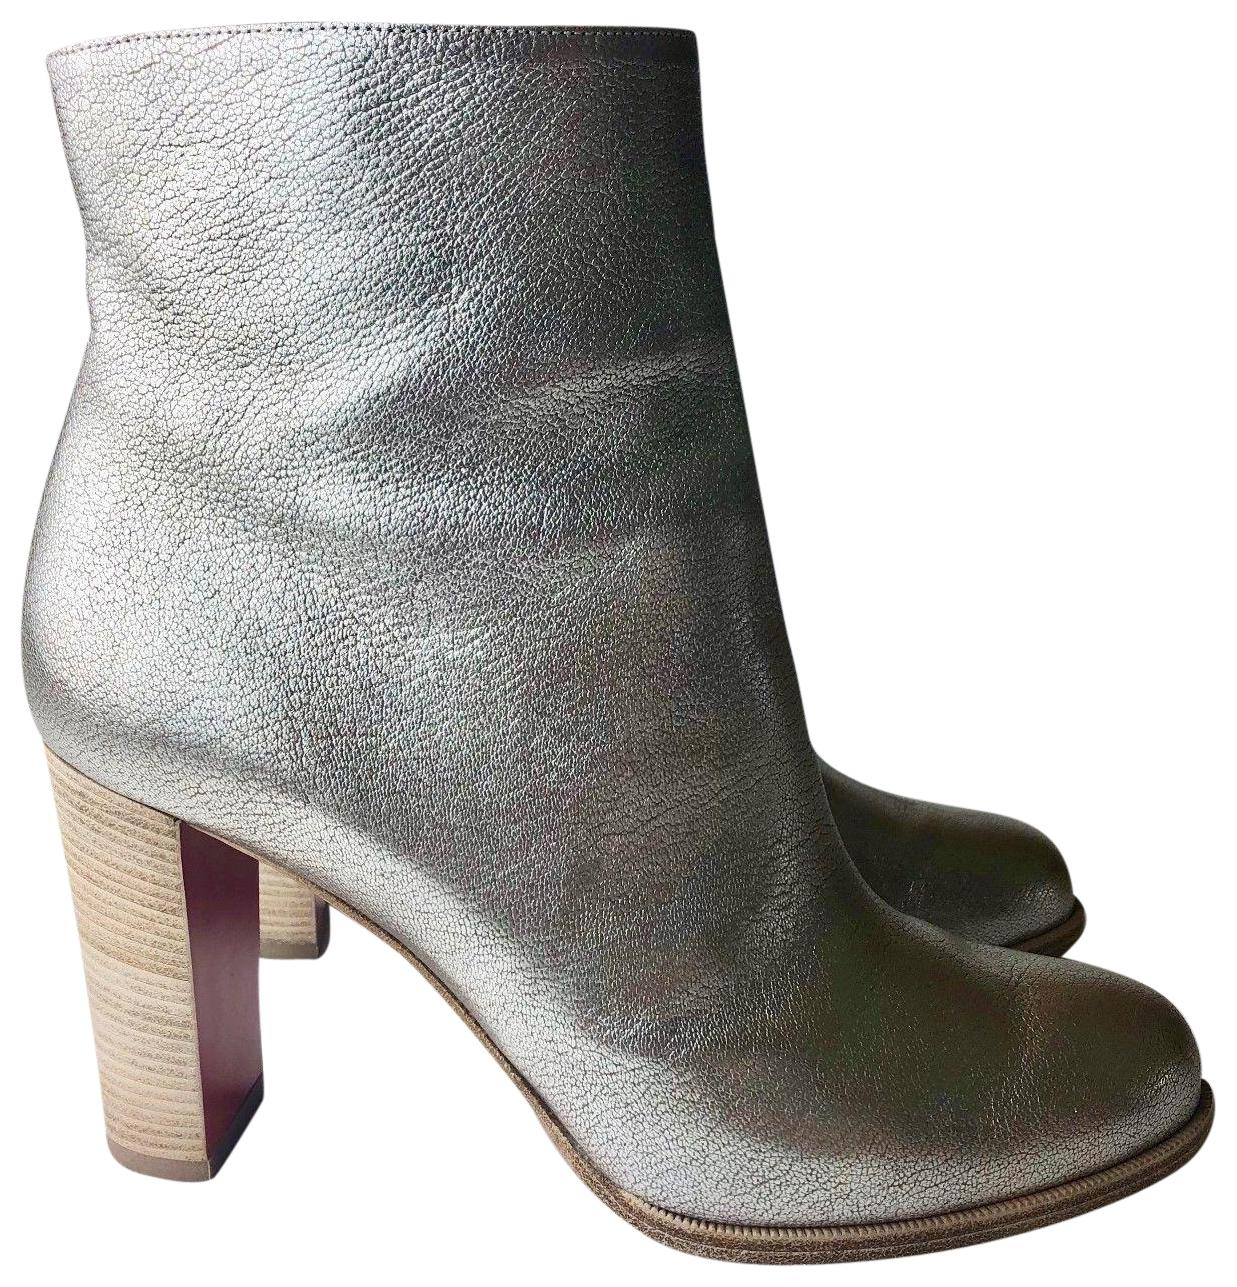 06774511fc91 Christian Christian Christian Louboutin Silver Adox 85 Metallic Leather  Ankle Boots Booties Size EU 38.5 (Approx. US 8.5) Regular (M